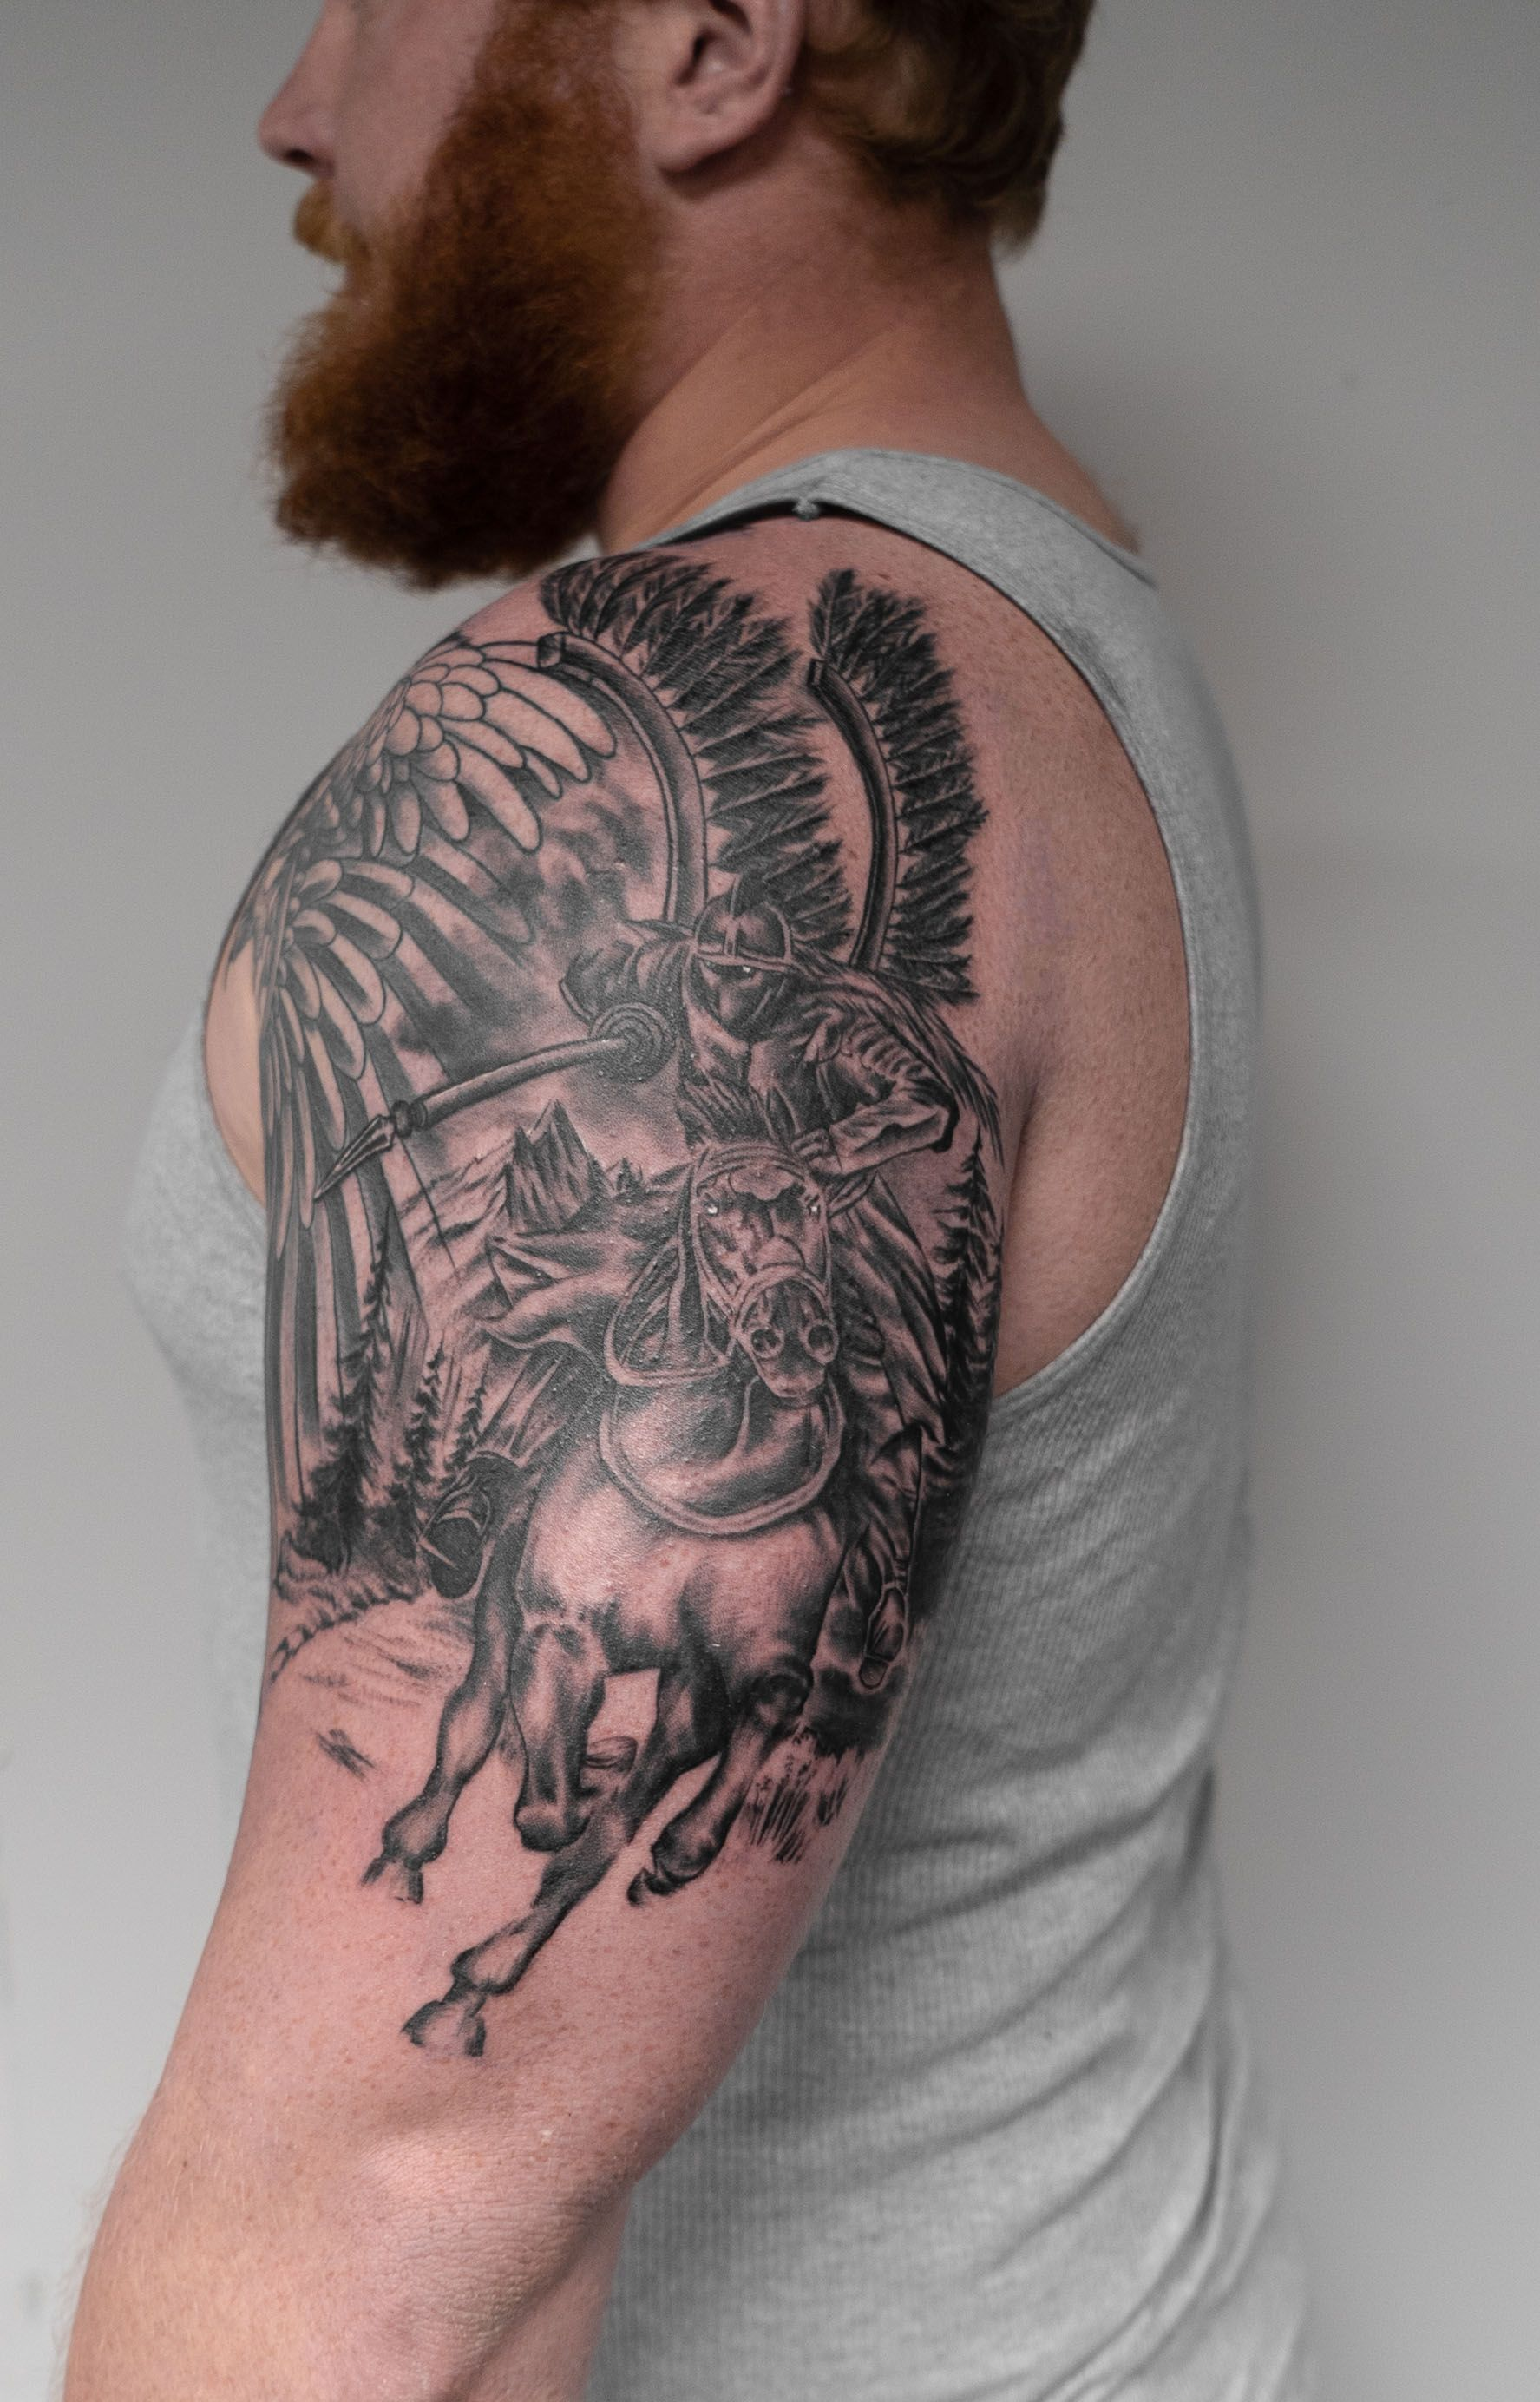 A Polish Knight And His Horse Displayed In Black Grey Photo Realistic Tattoo Work Tattoos Tattooart Tattooer Tattoo Ta Tattoos Laser Tattoo Tattoo Work